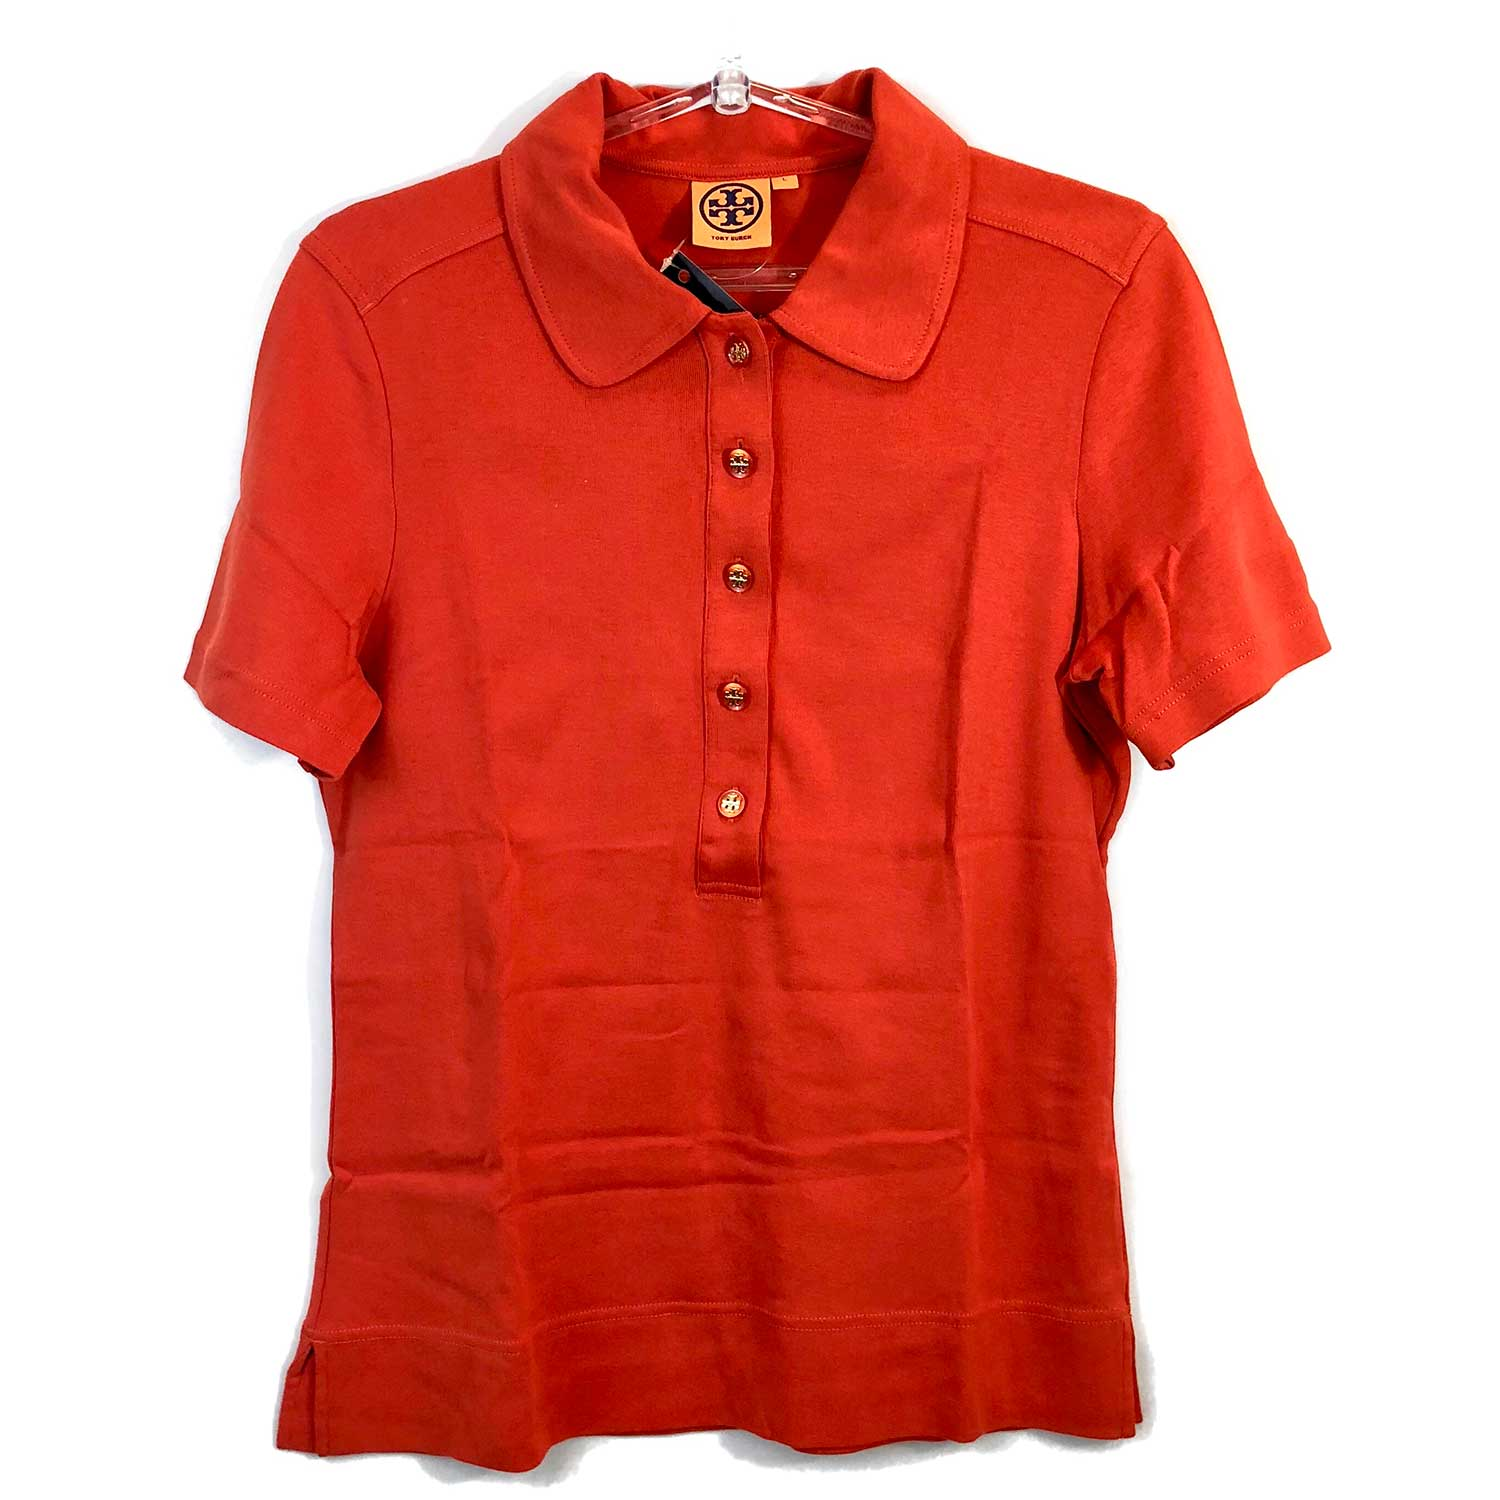 Camiseta Polo Tory Burch